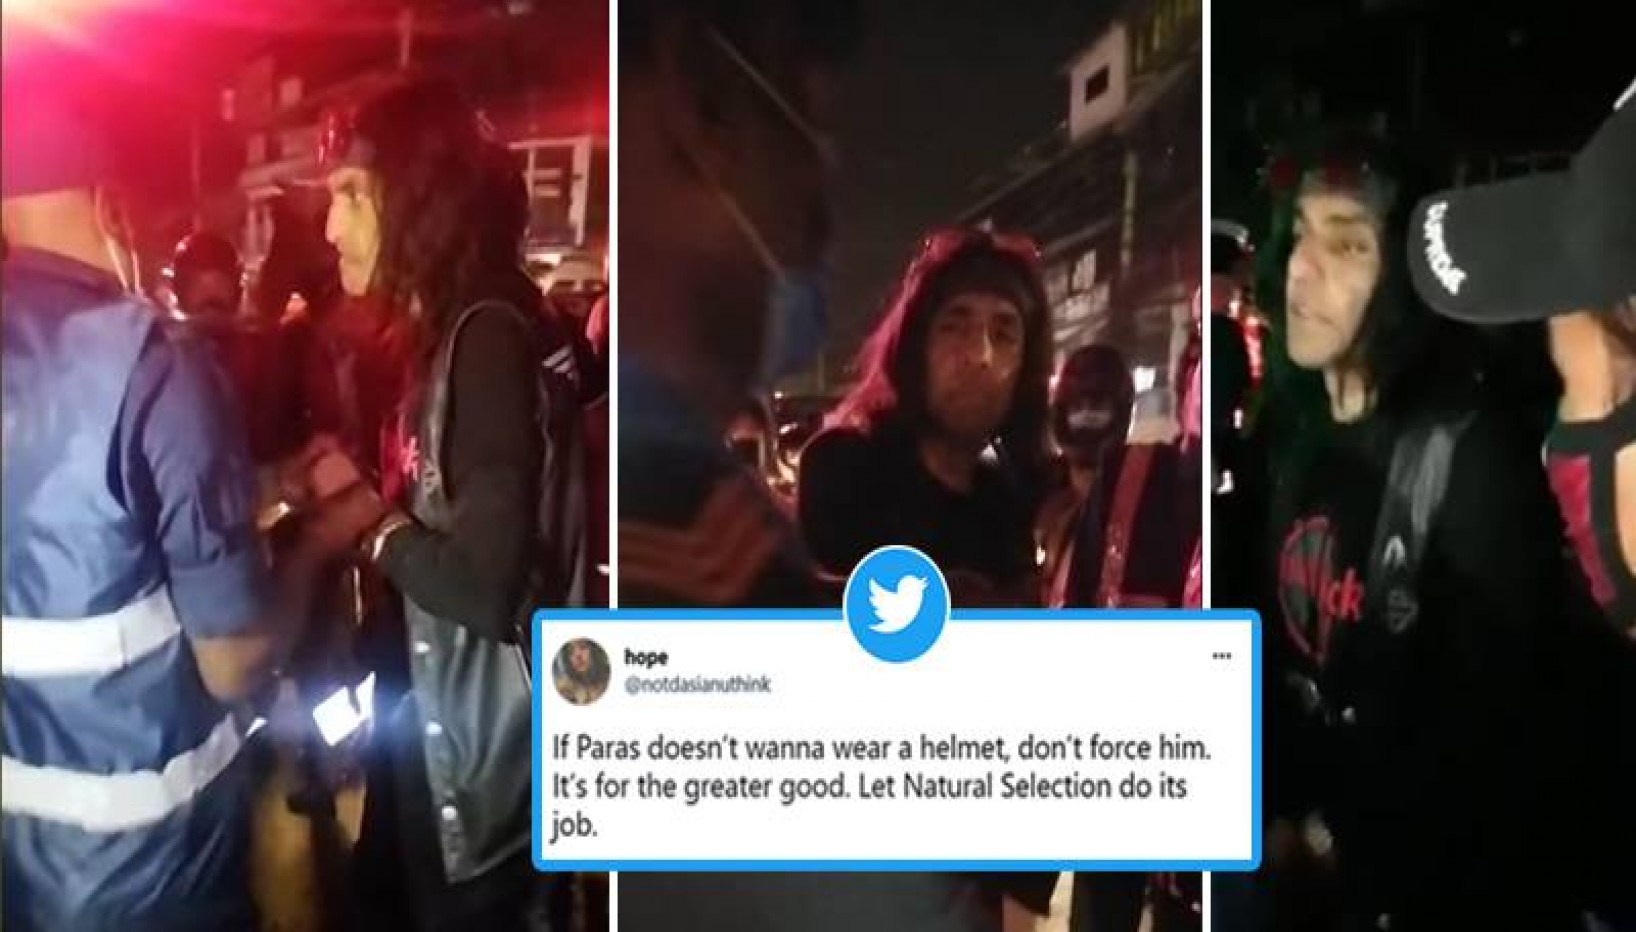 Former Prince Paras Shah Caught In A Tussle Against Police; Internet Reacts With Memes, Satires And Opinions